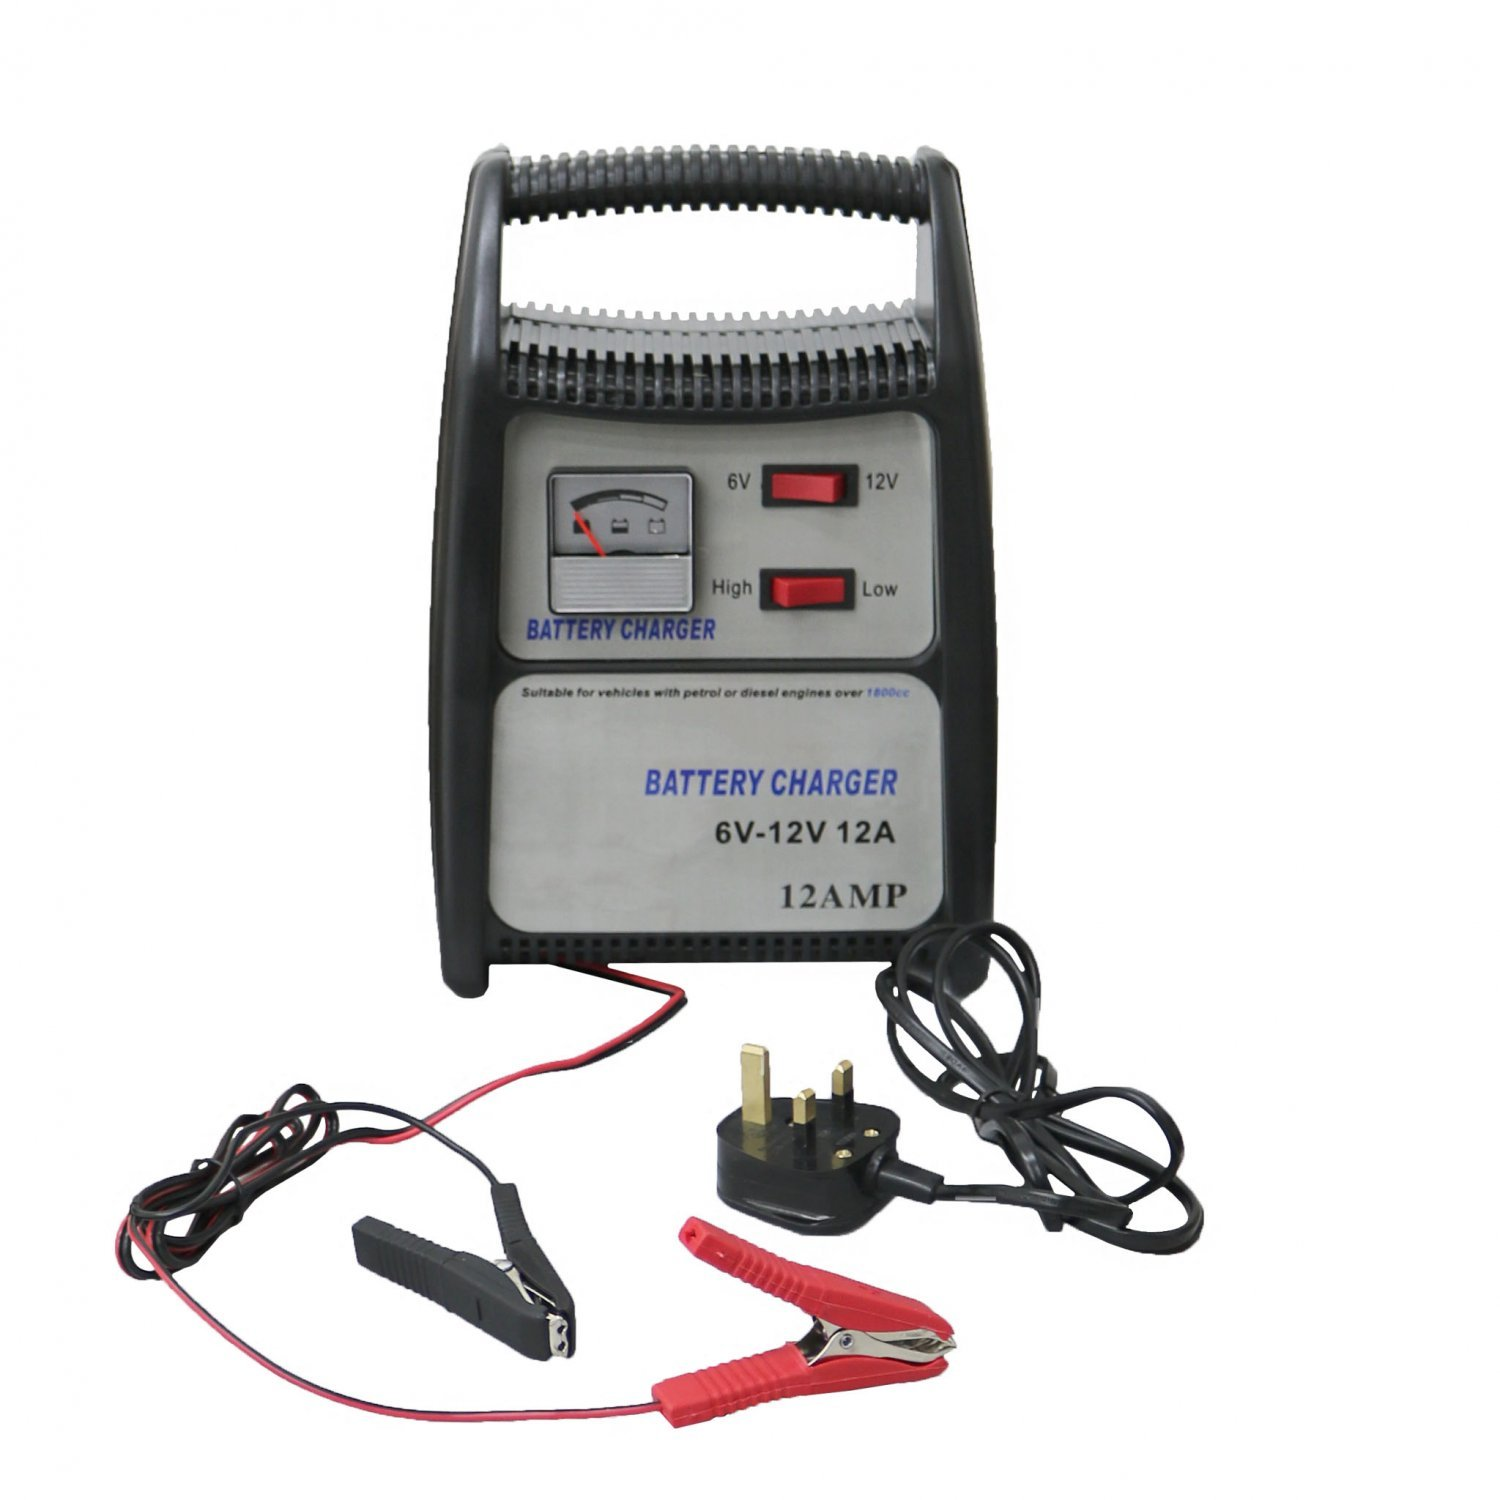 12A 12V Compact Portable Car Van Vehicle Battery Charger